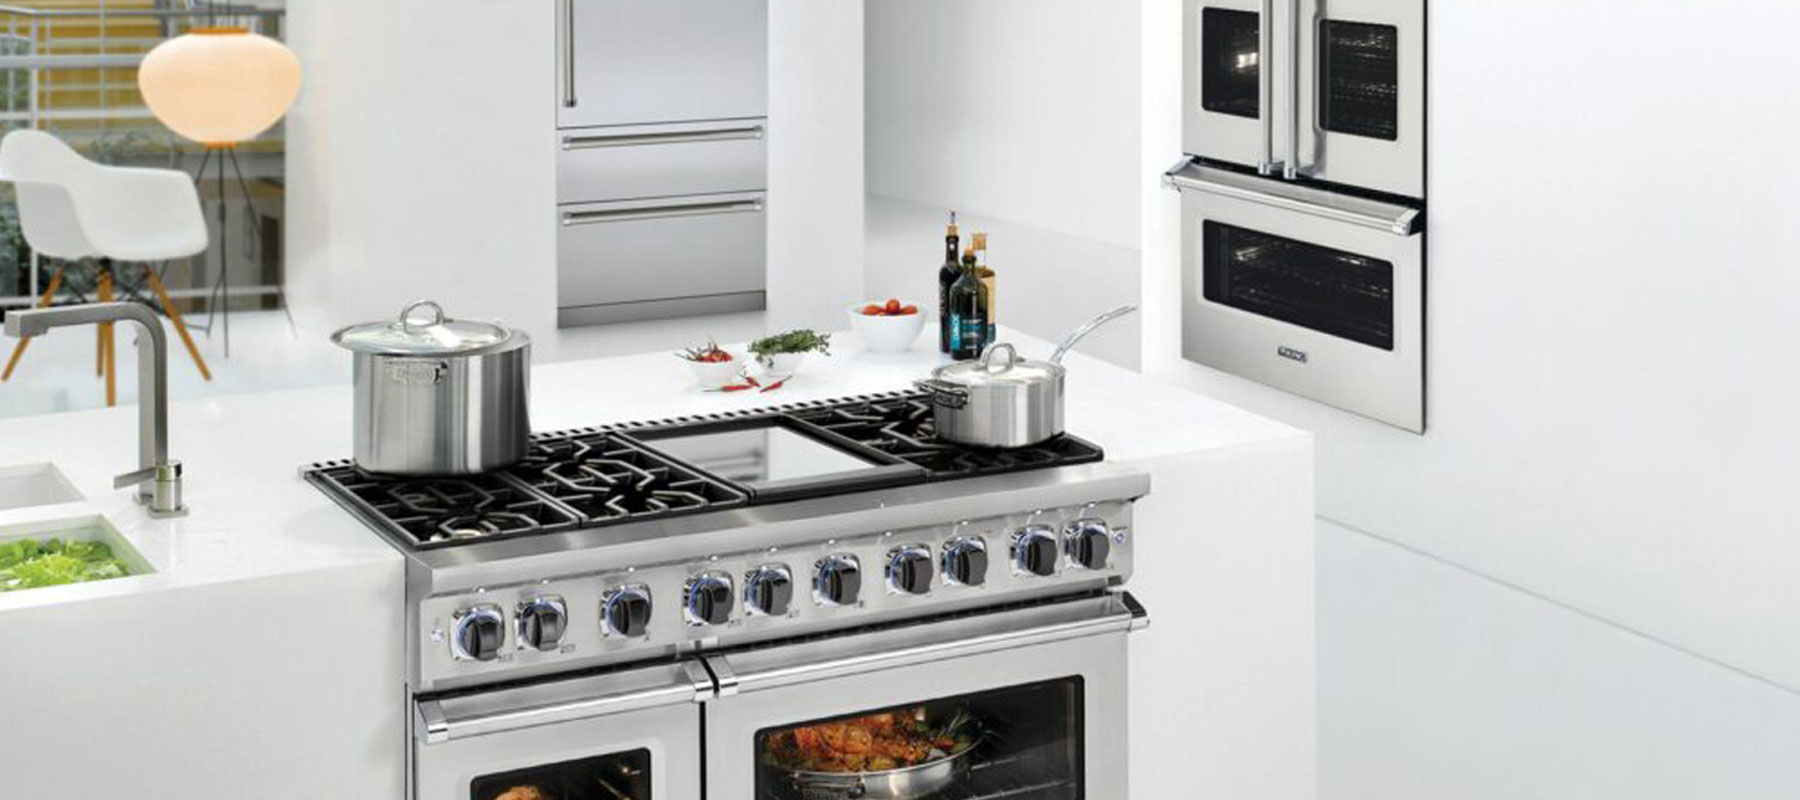 Find Out Why Your Viking Oven Not Holding Temperature and Better Understand It | Professional Viking Repair